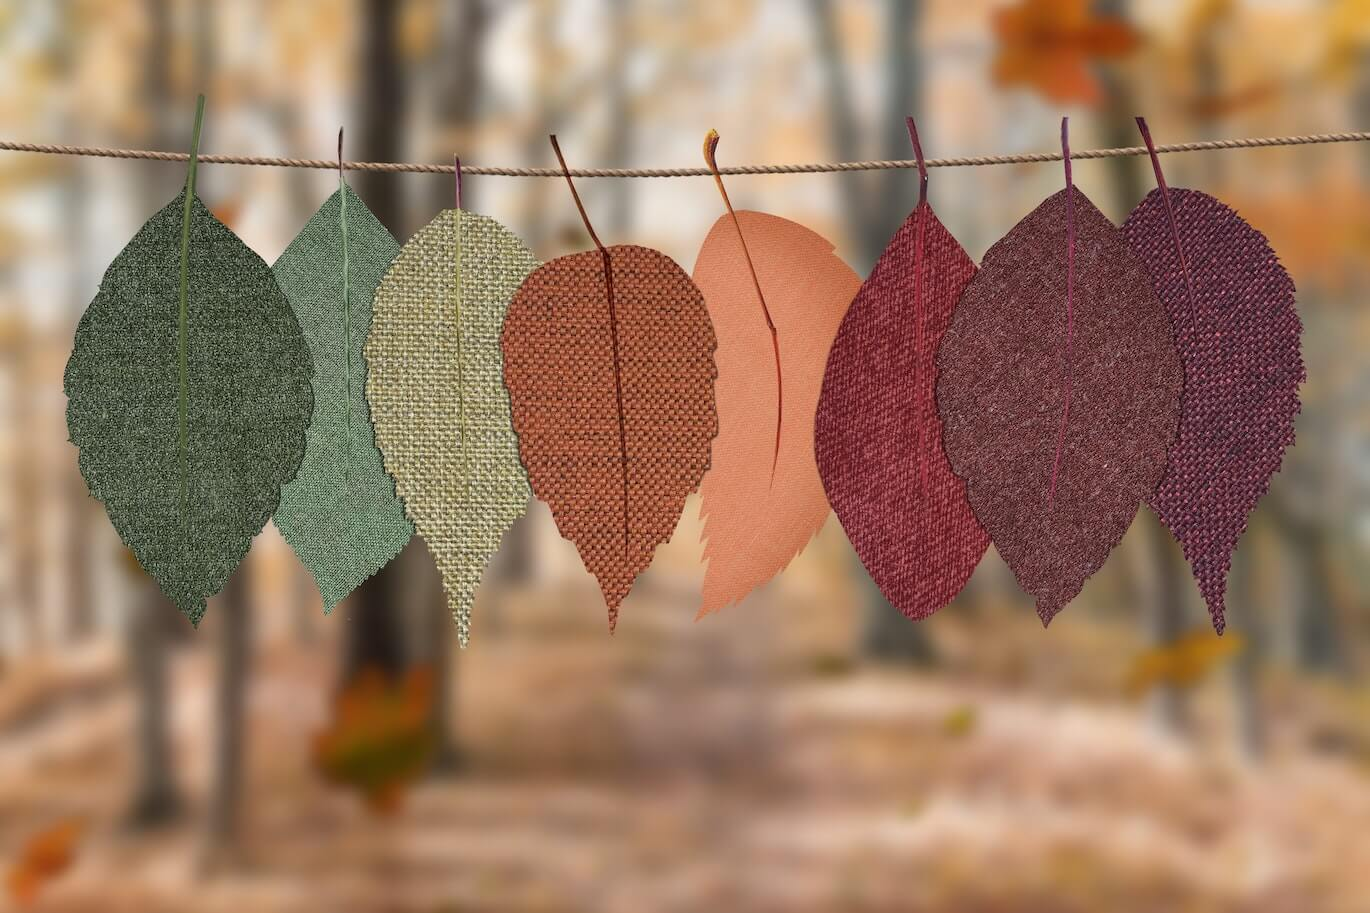 colorful autumn leafs hanging on a thread